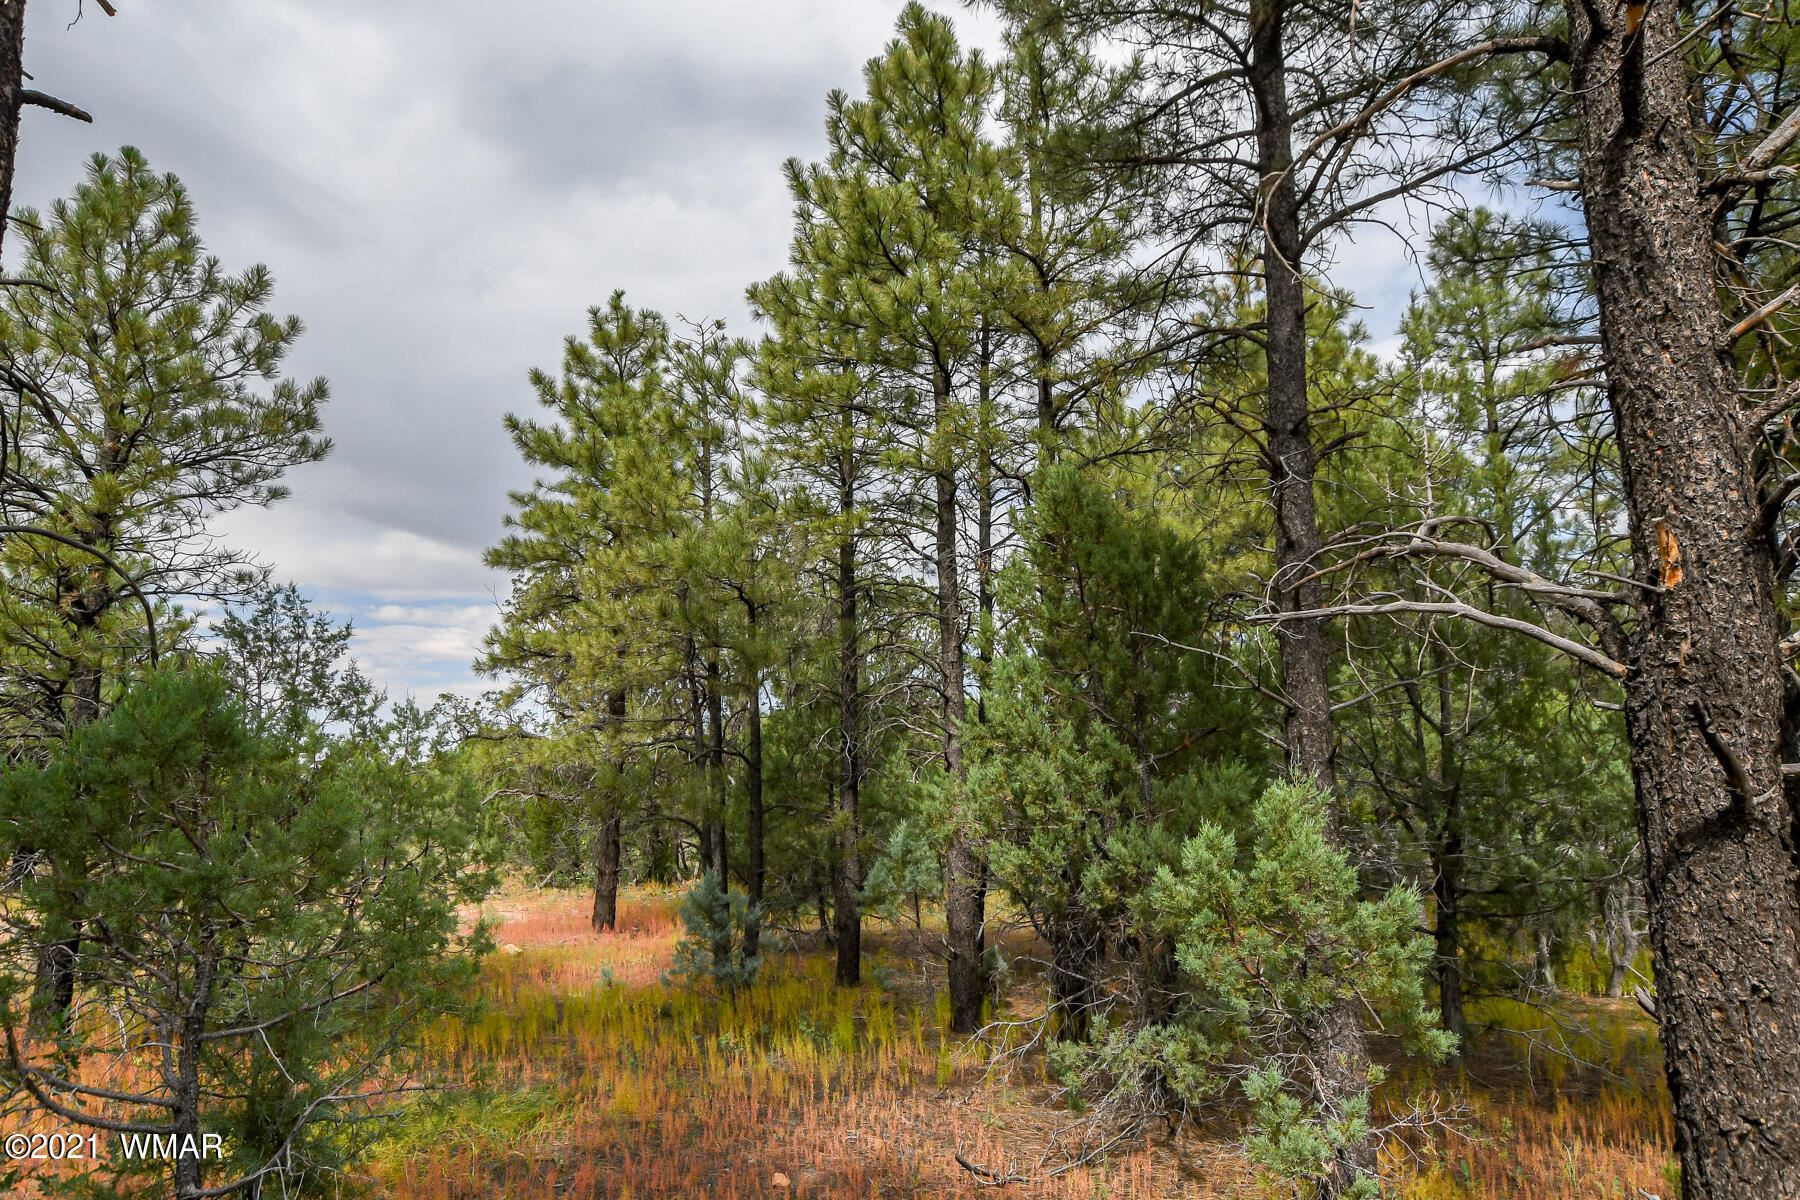 Photo for 1101 W Old Linden Road, Show Low, AZ 85901 (MLS # 237698)